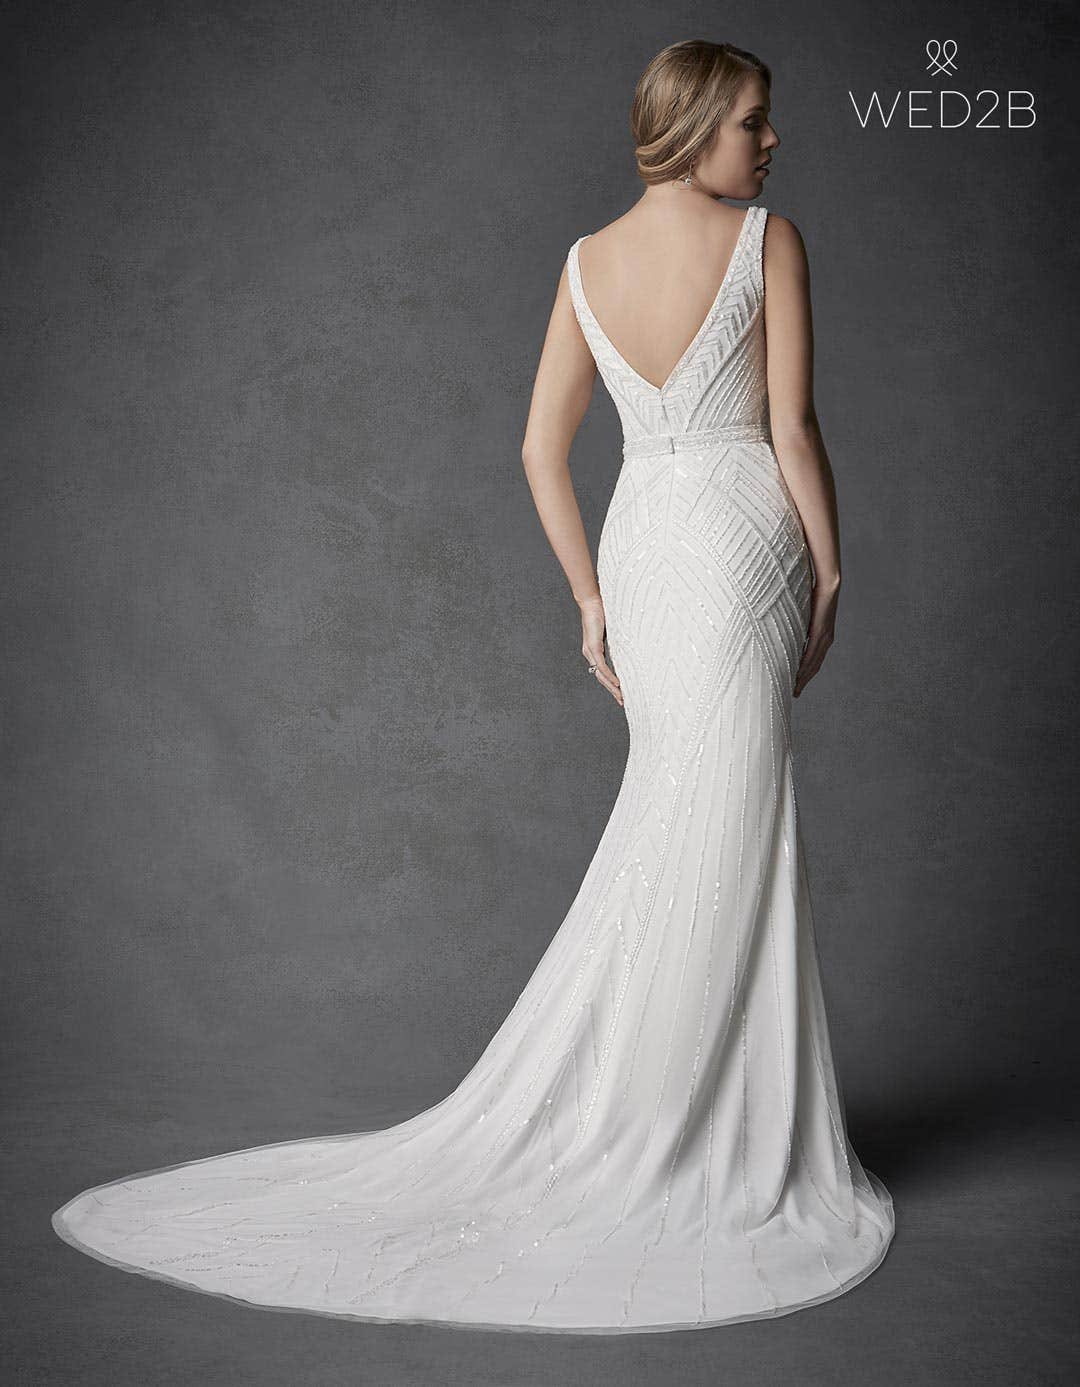 Destination wedding dress - Cyrus